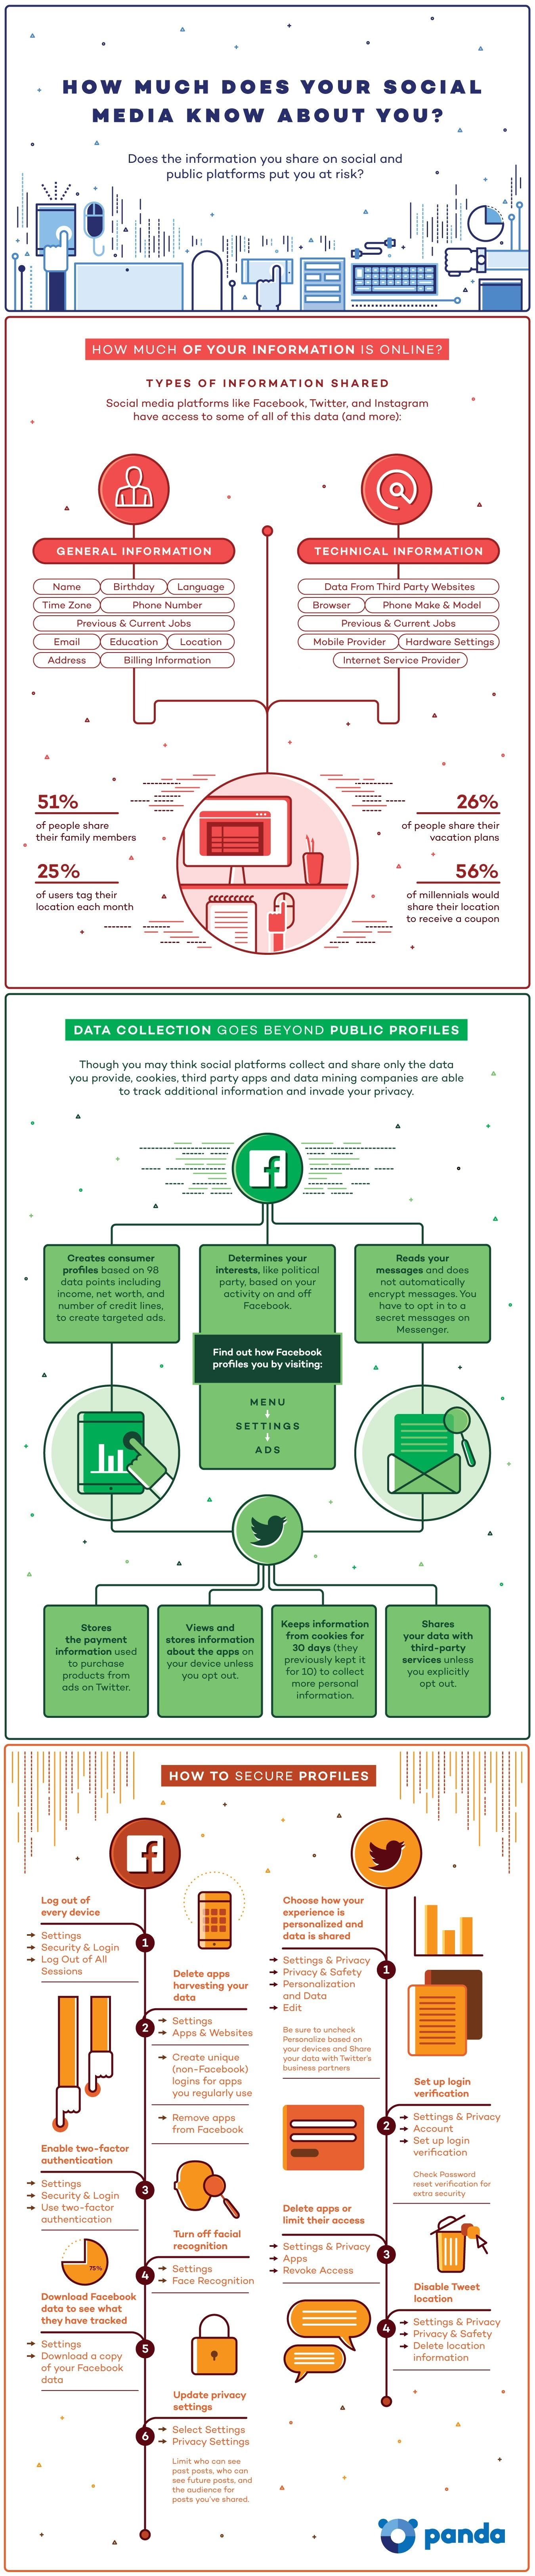 How Much Does Social Media Know About You - #infographic